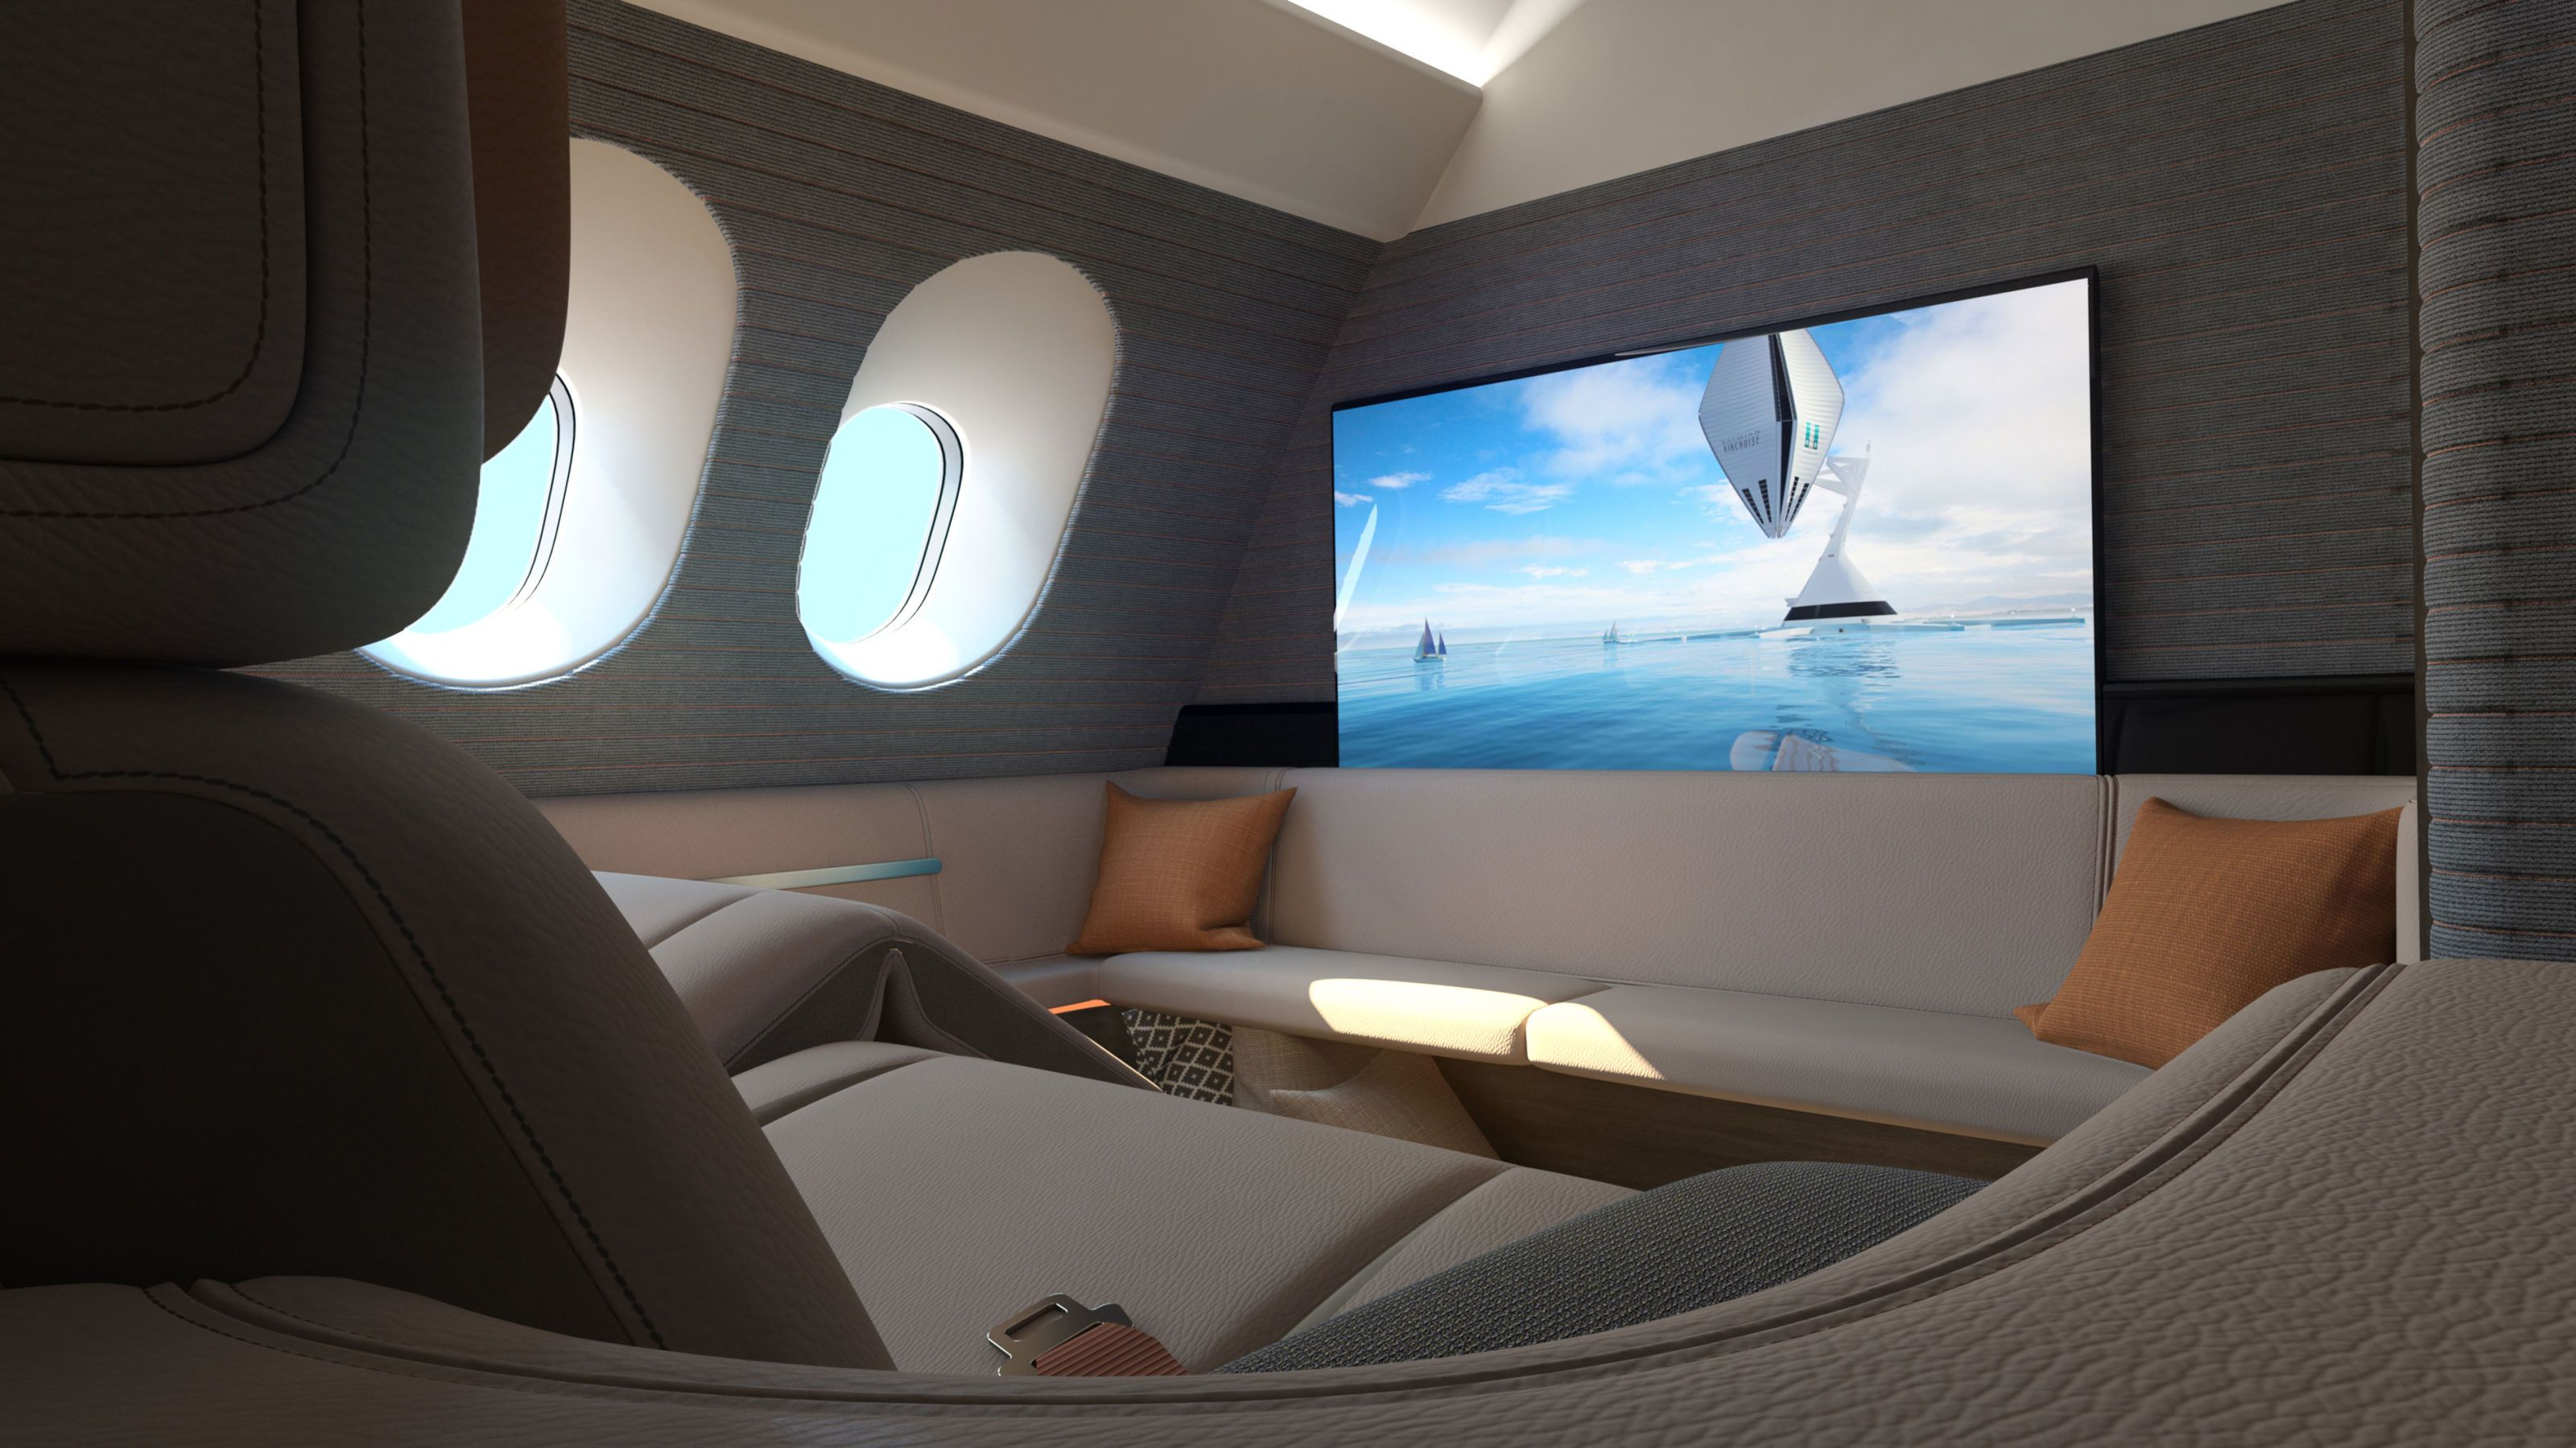 The Most Spacious Airplane Seat Could Be A Bed Luxurious